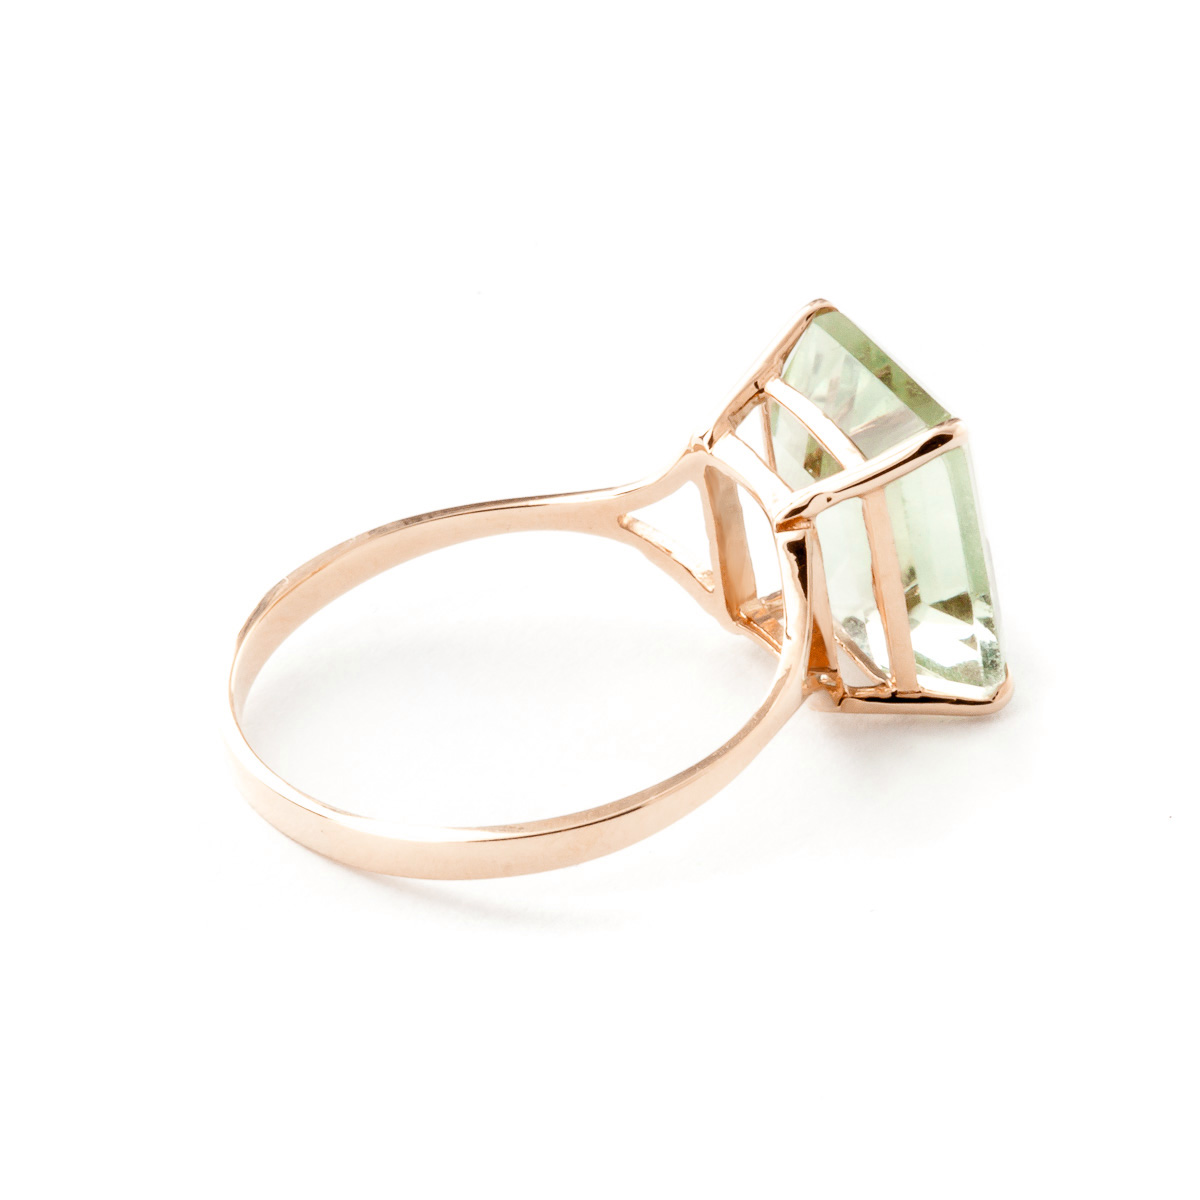 Green Amethyst Ring 6.5ct in 9ct Rose Gold